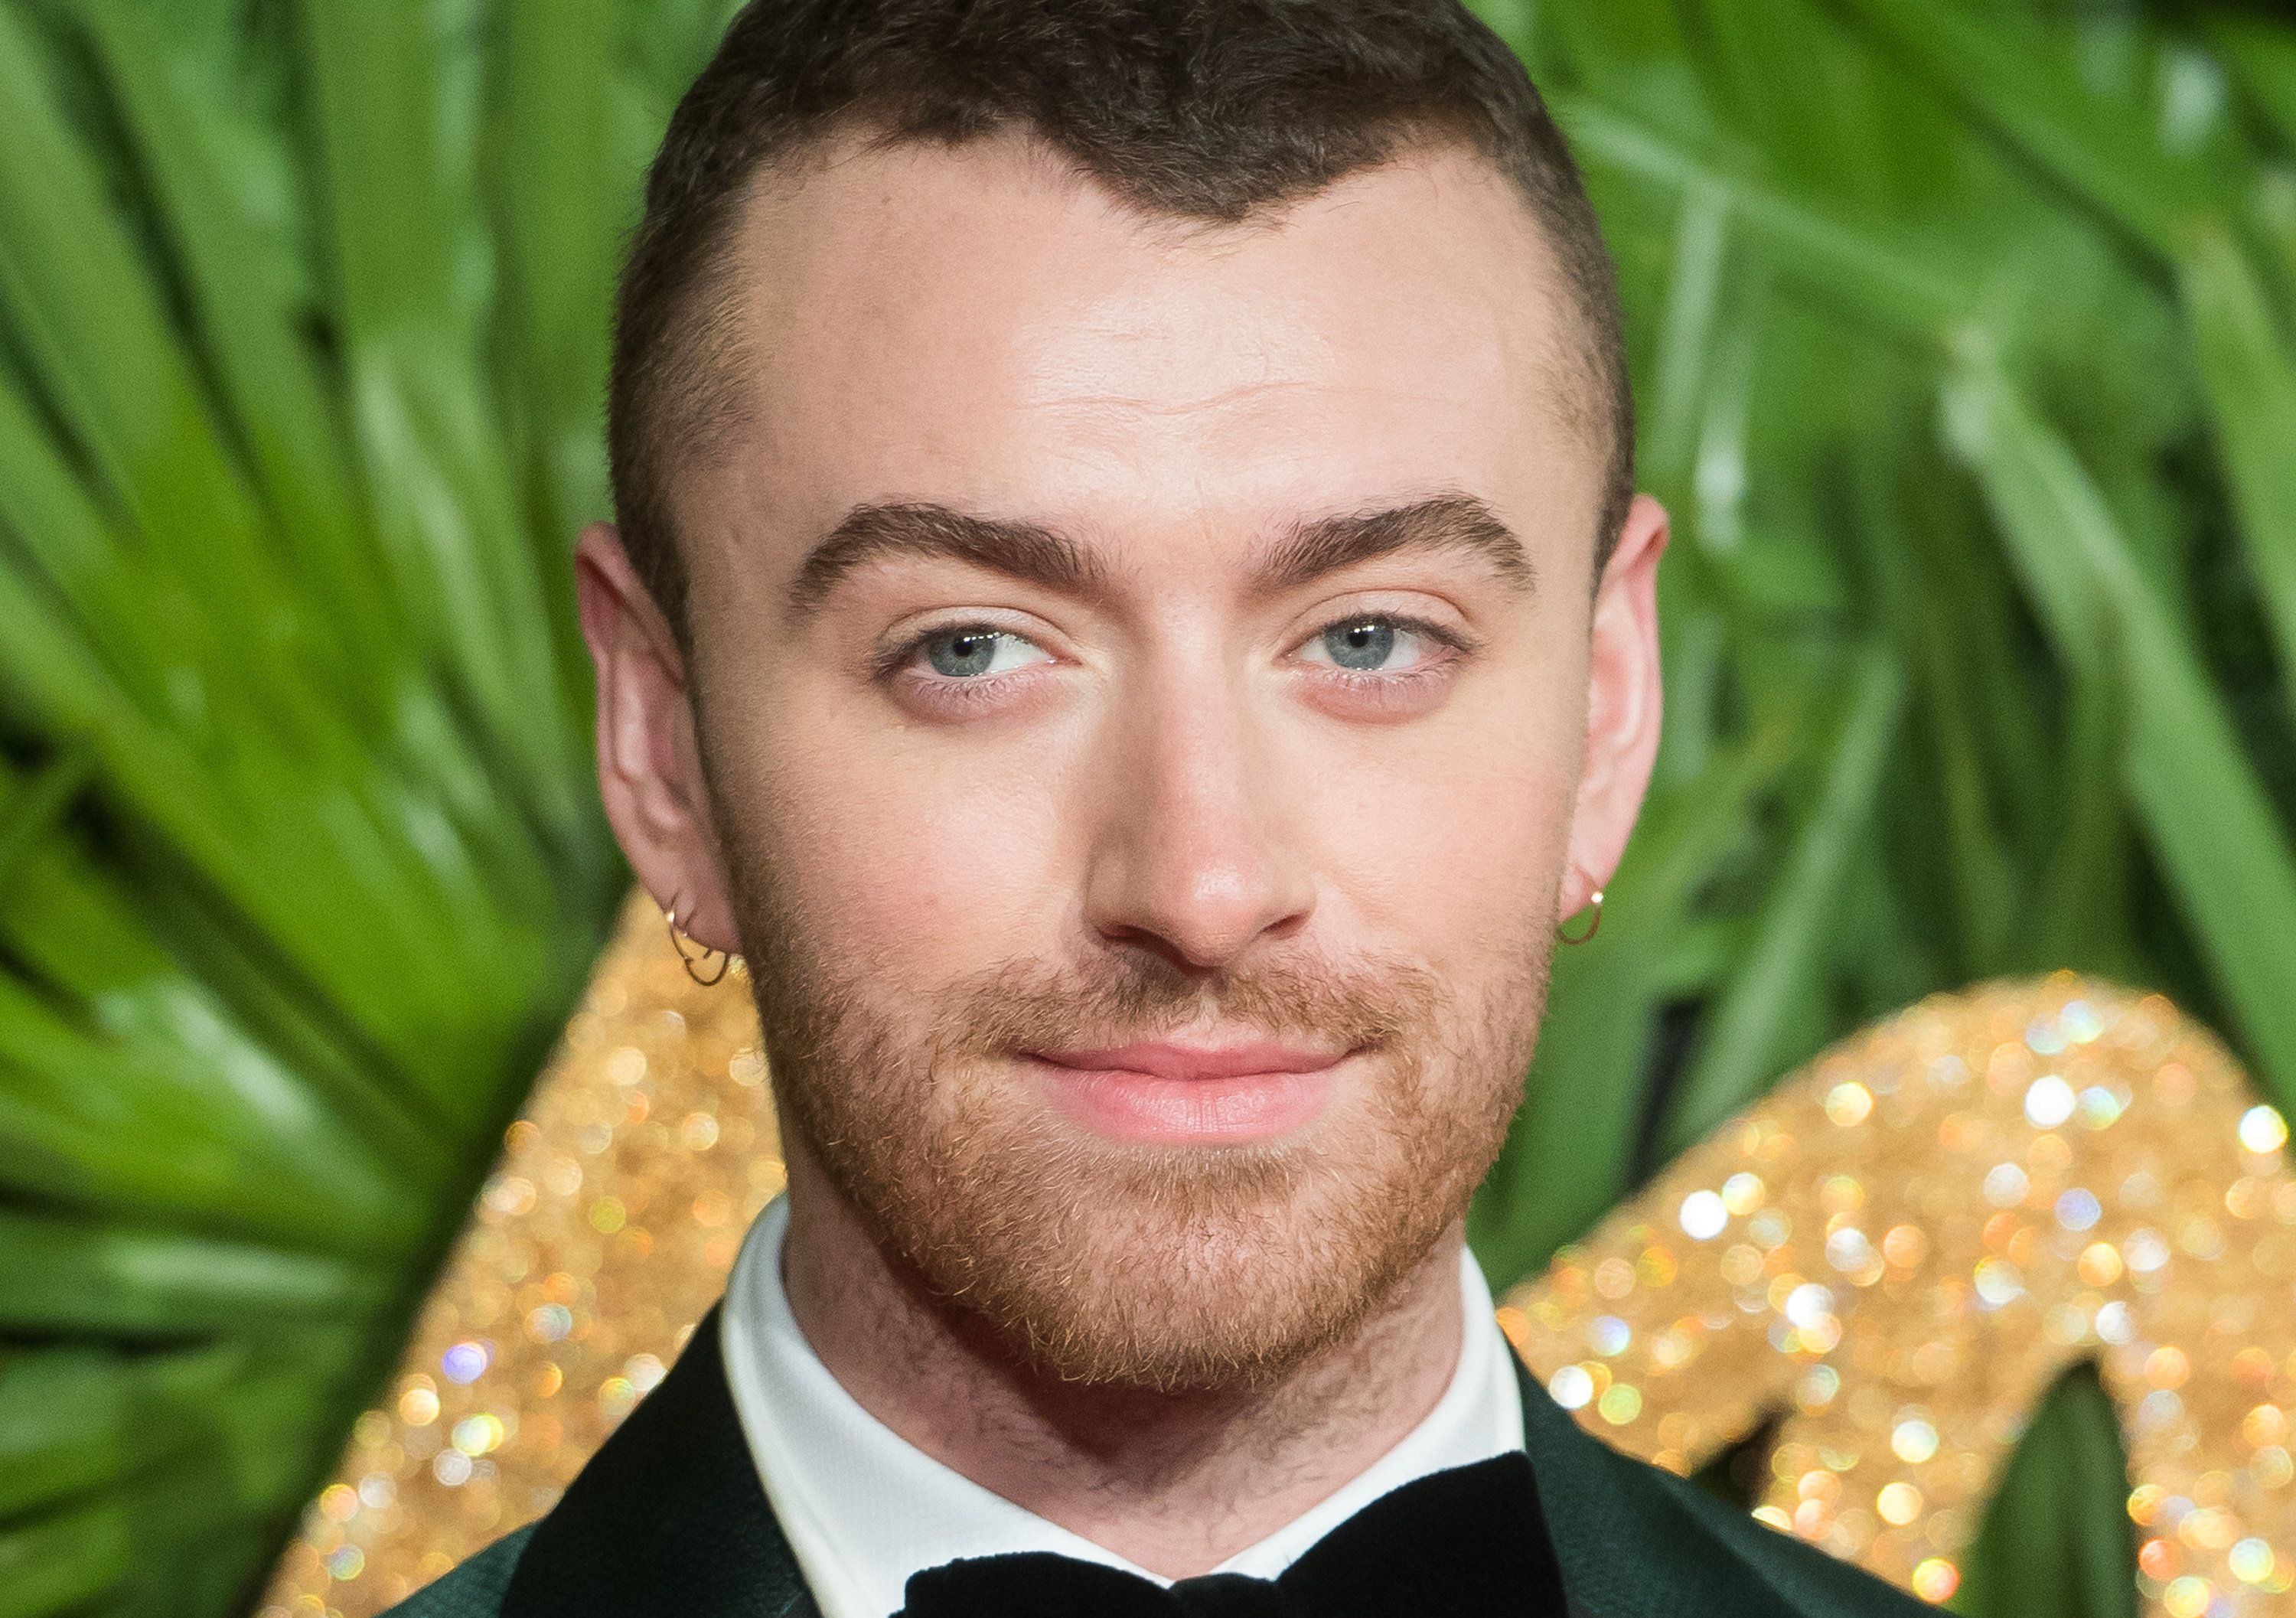 LONDON, ENGLAND - DECEMBER 04:  Sam Smith attends The Fashion Awards 2017 in partnership with Swarovski at Royal Albert Hall on December 4, 2017 in London, England.  (Photo by Samir Hussein/Samir Hussein/WireImage)